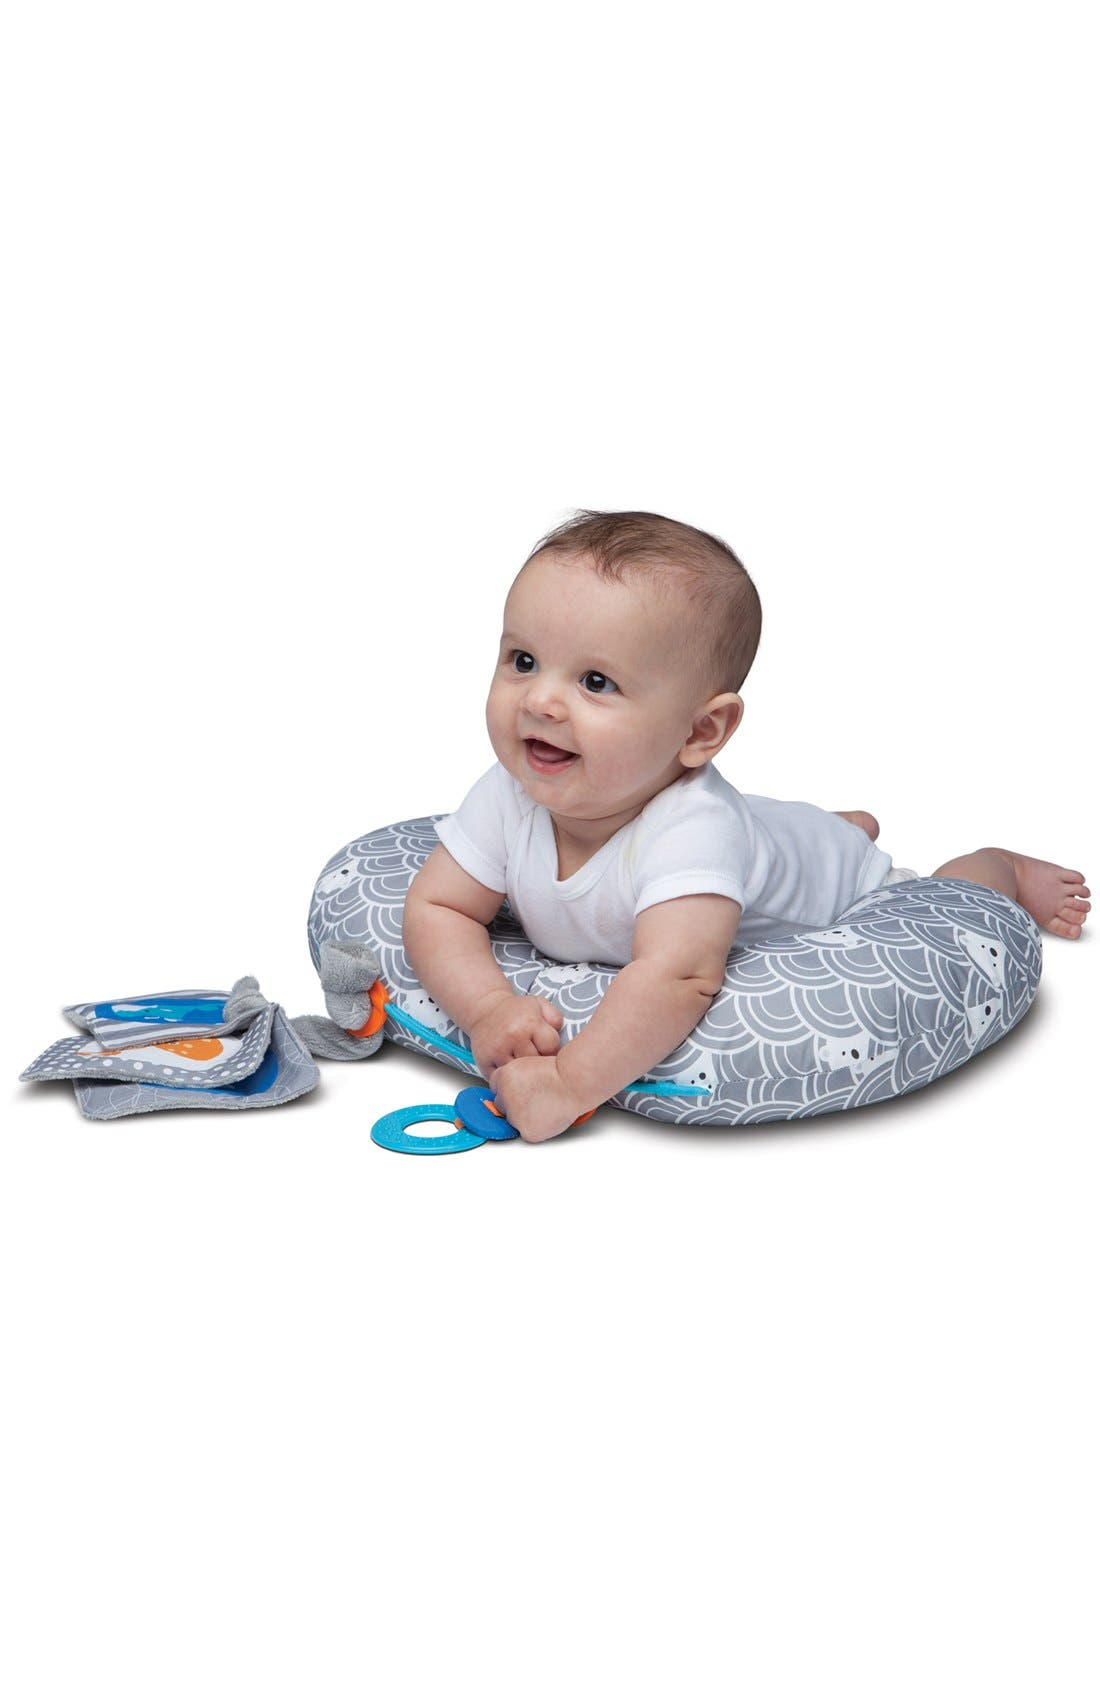 Tummy Time - SlideLine Collection Mini Pillow, Book & Teething Ring,                             Alternate thumbnail 4, color,                             GREY